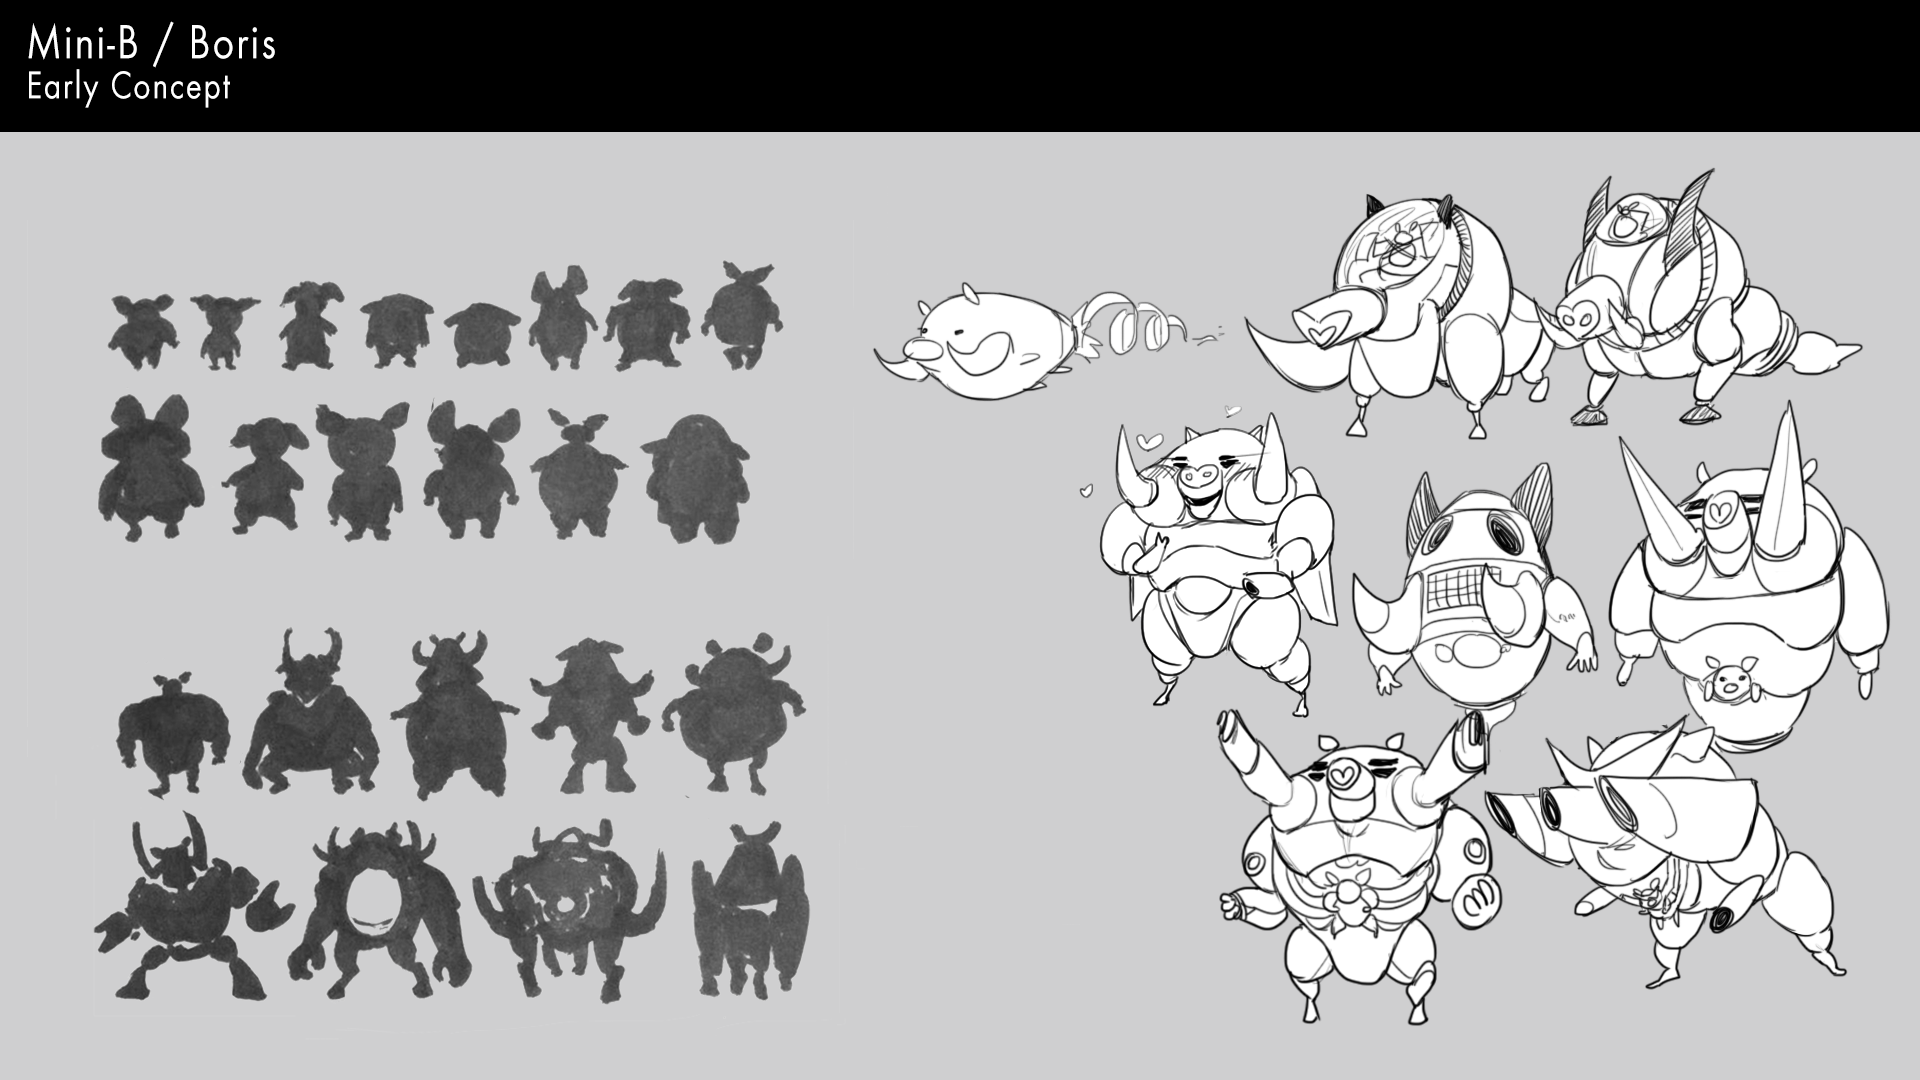 Mini-B and Boris early concepts.